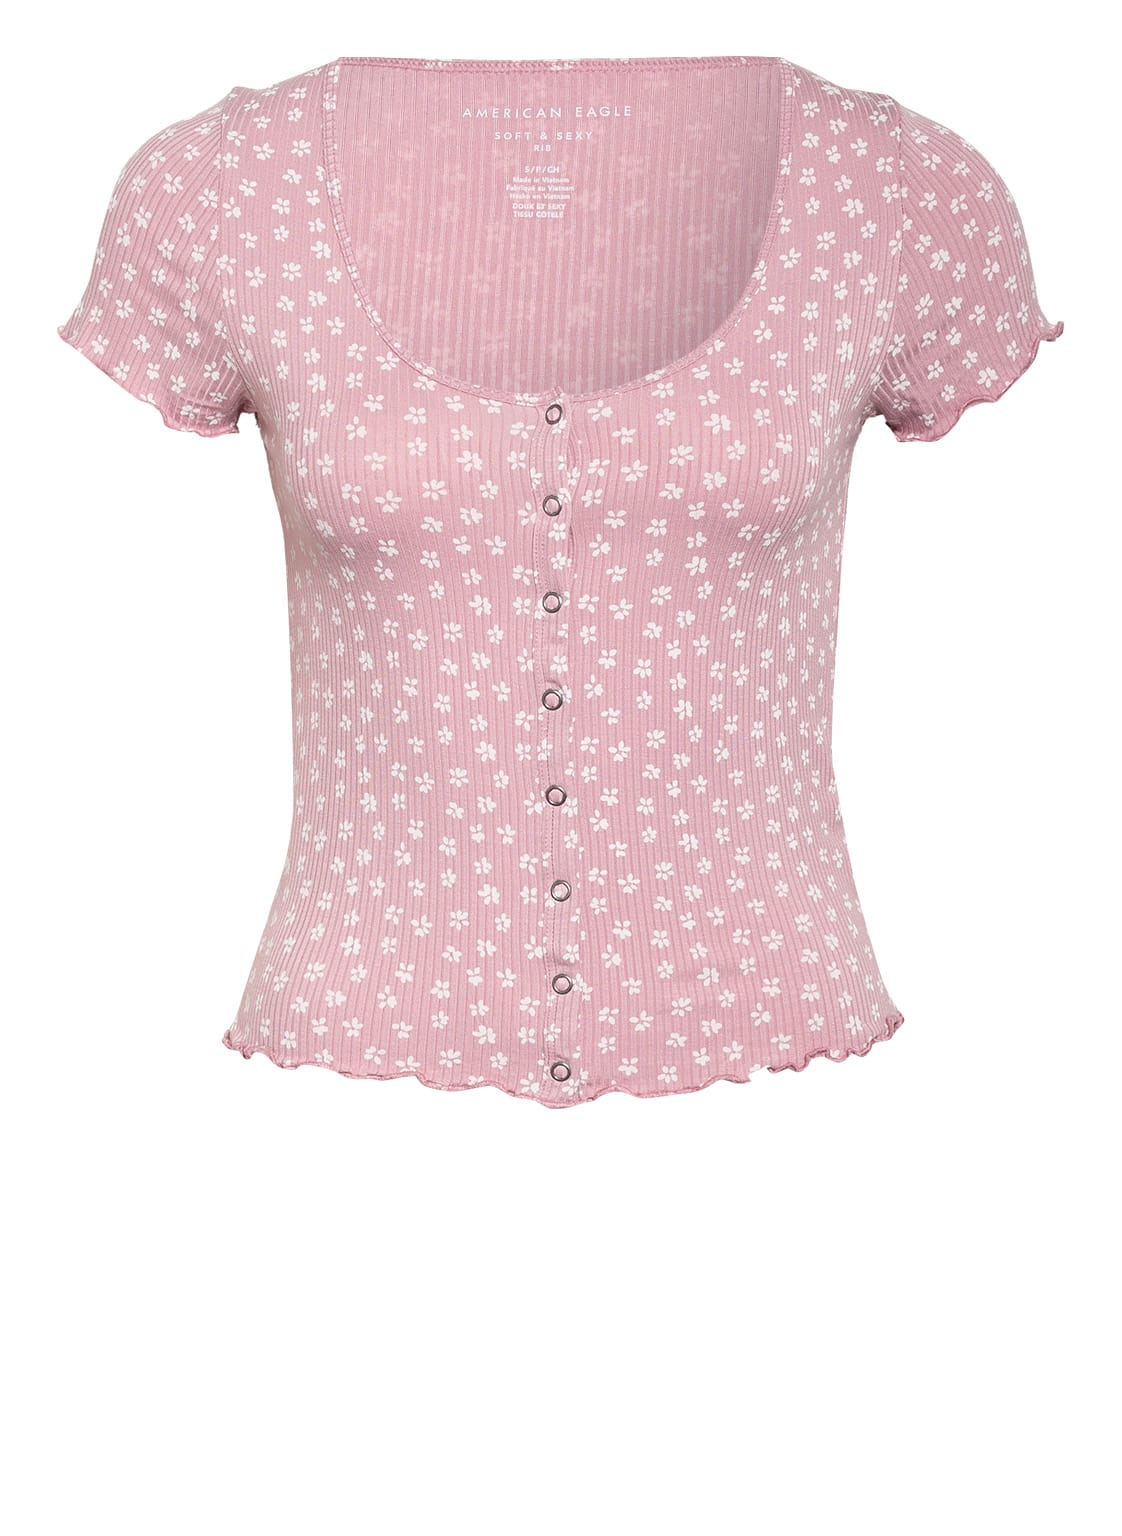 Image of American Eagle Cropped-Shirt rosa